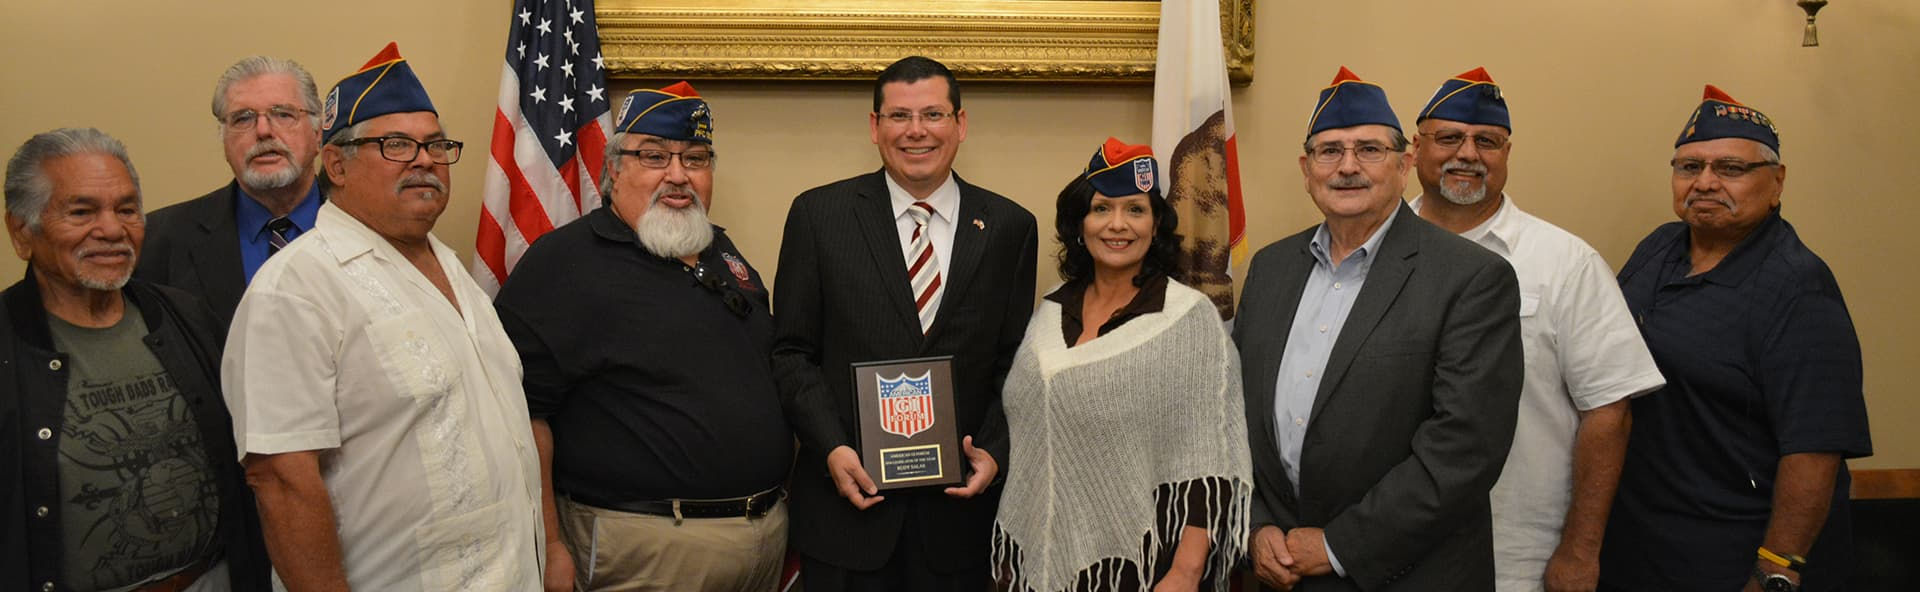 American GI Forum Legislator of the year award 2016